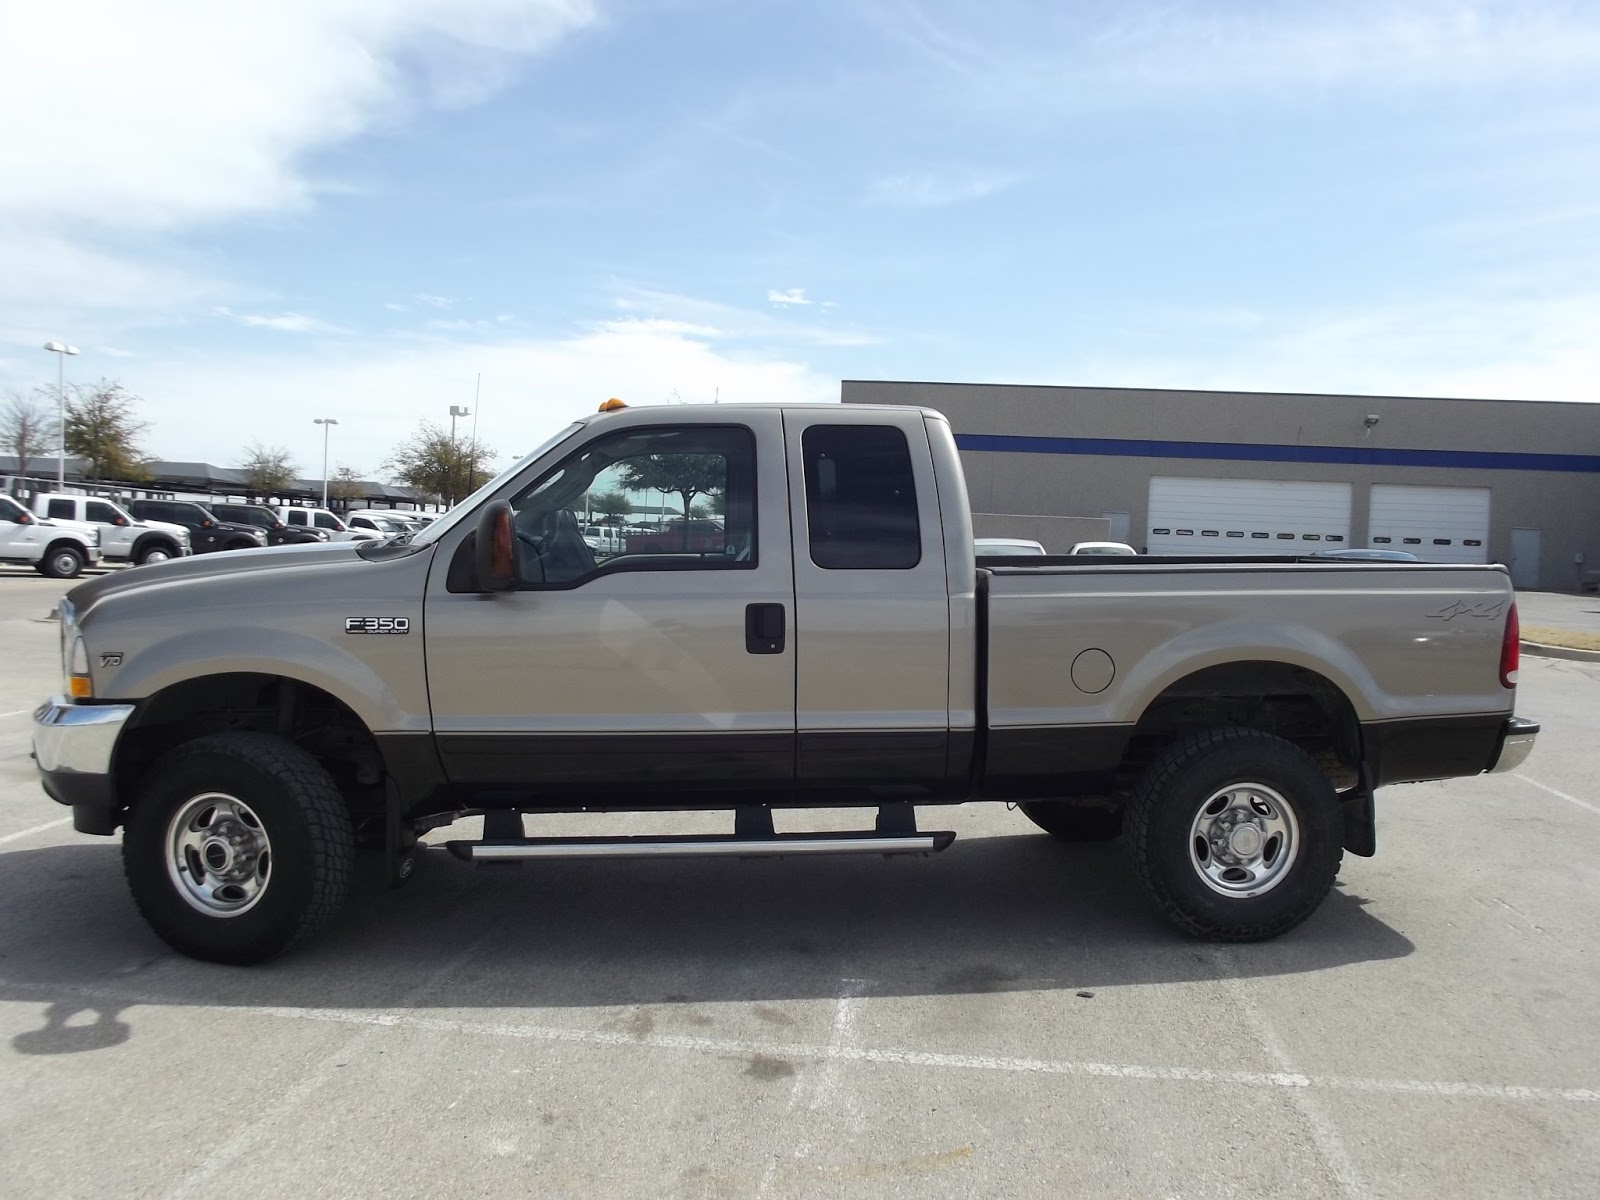 Tdy Sales 817 243 9840 For Sale 2003 Ford F350 Lariat